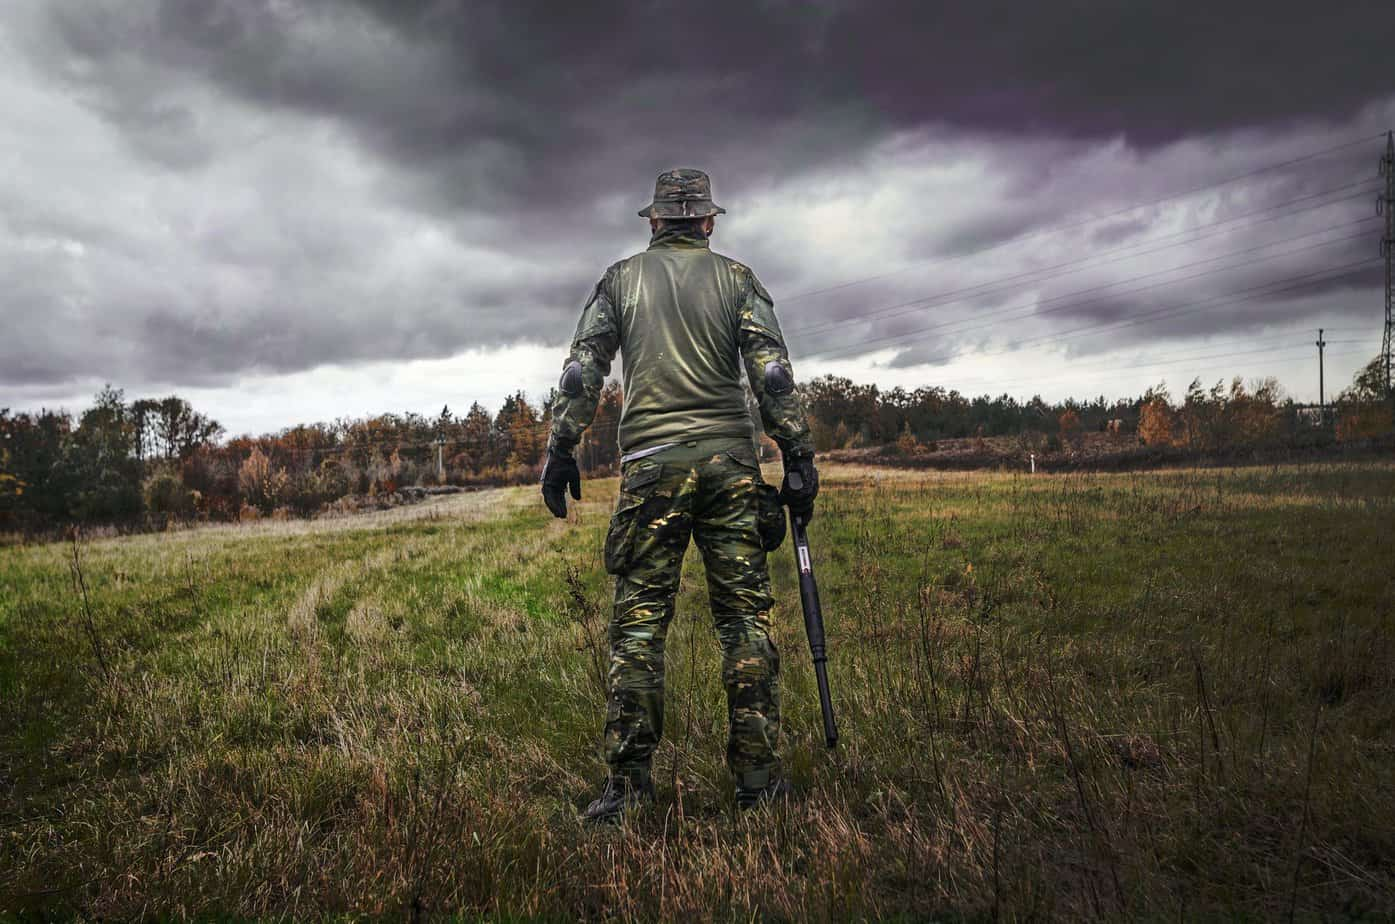 how to avoid being seen camouflage & concealment tips